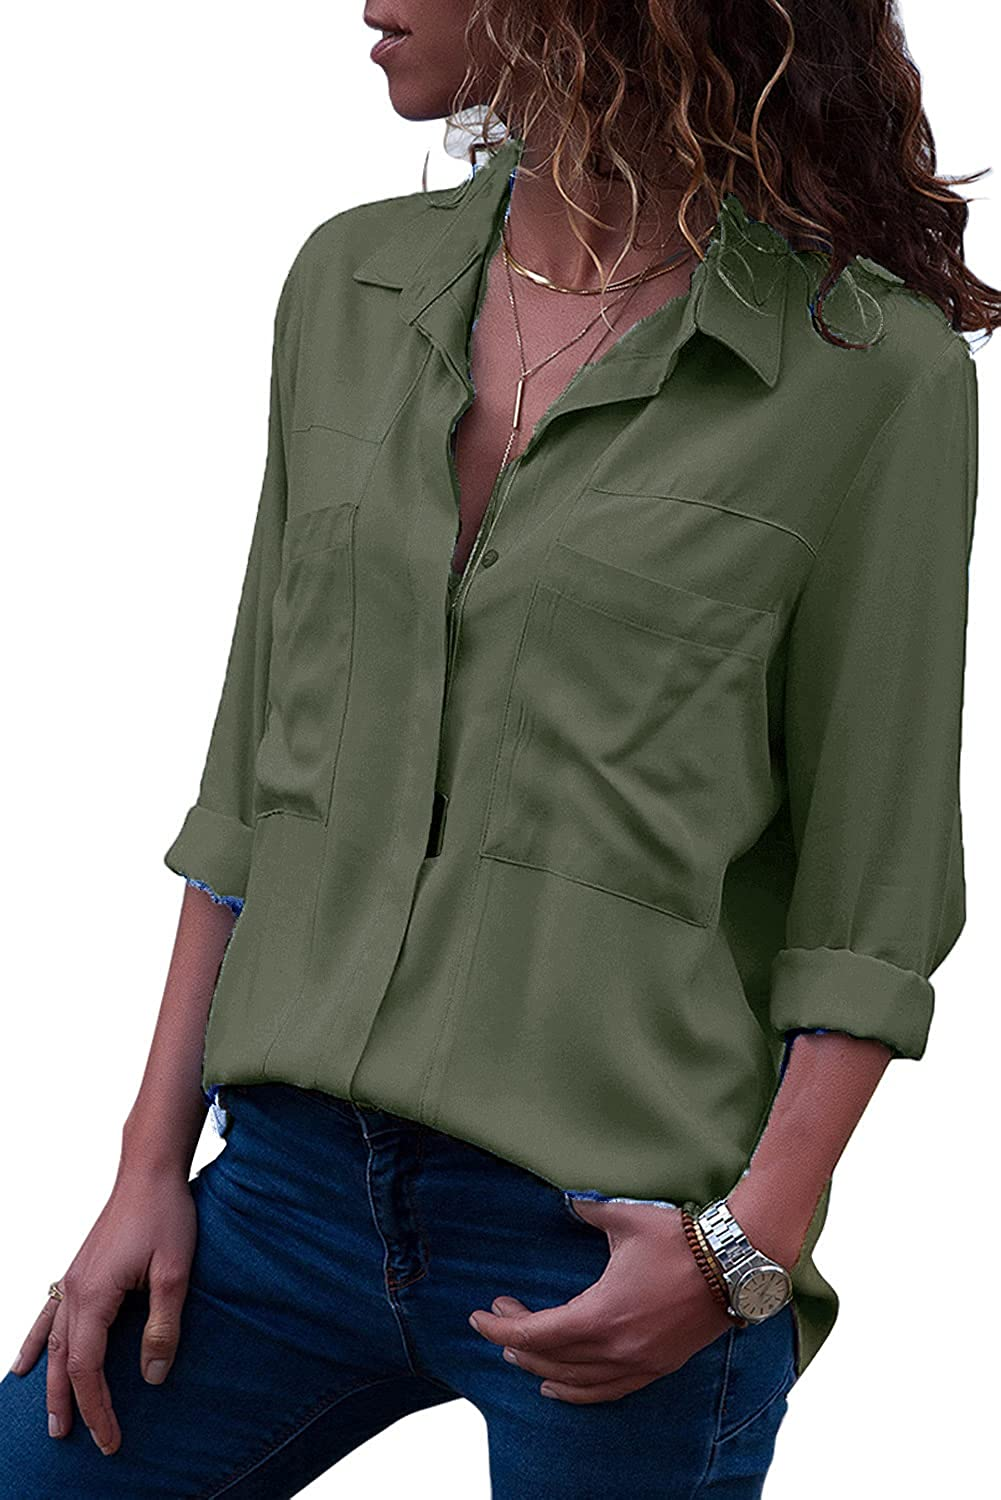 Bellastory Women's Button Down Shirts Roll-up Sleeve Blouse V Neck Casual Tunics Solid Color Tops with Pockets